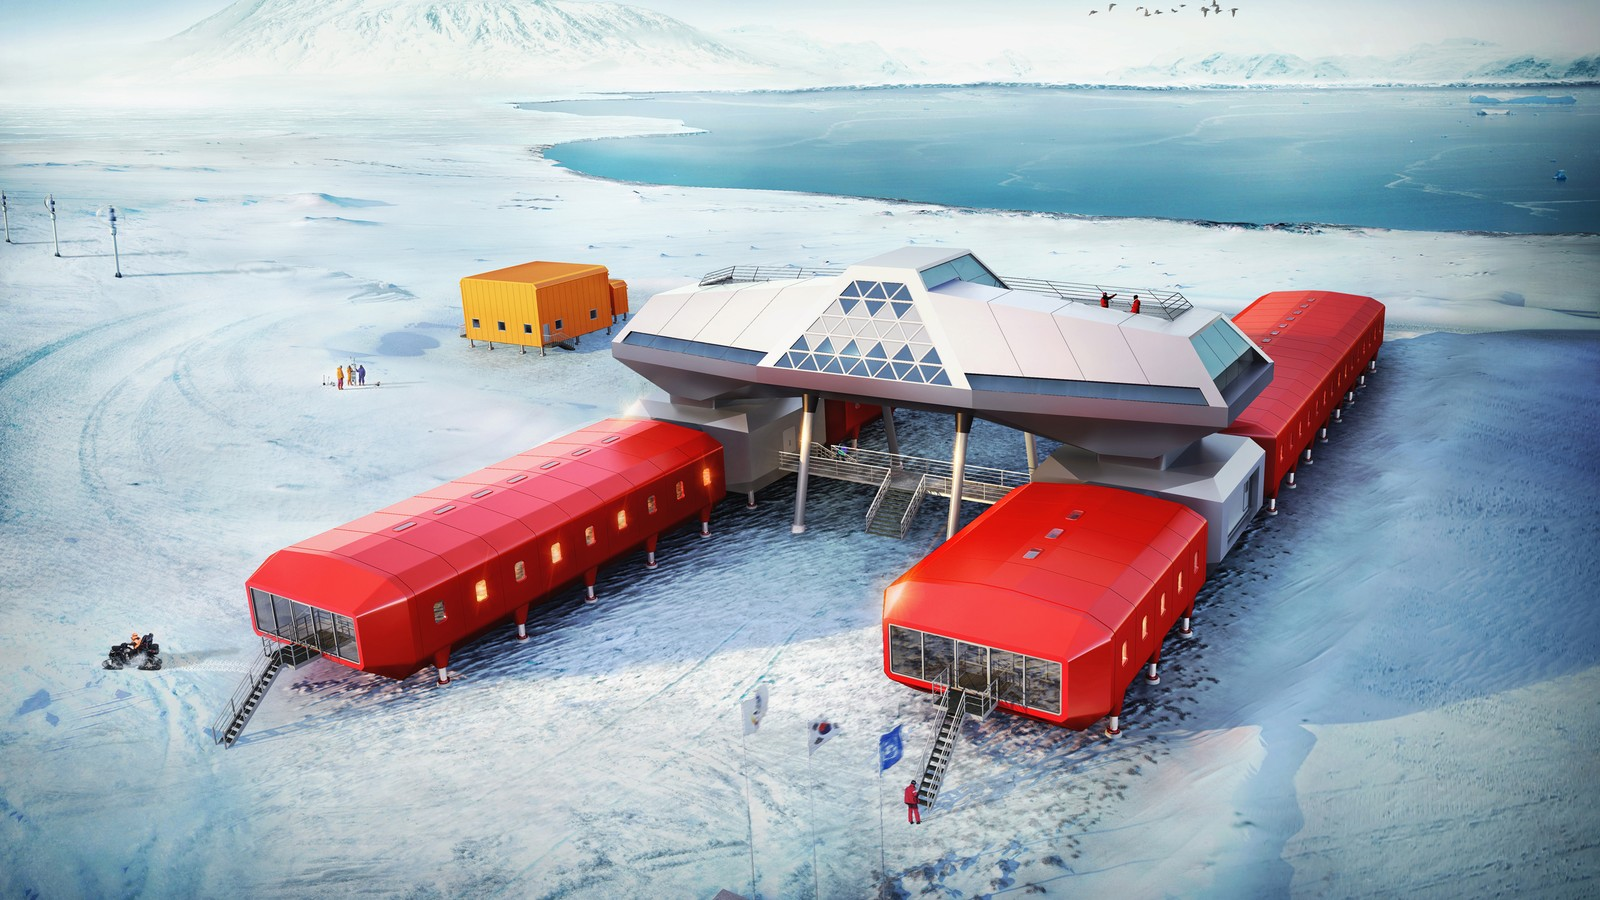 Jang Bogo Korean Antarctic Research Station 1